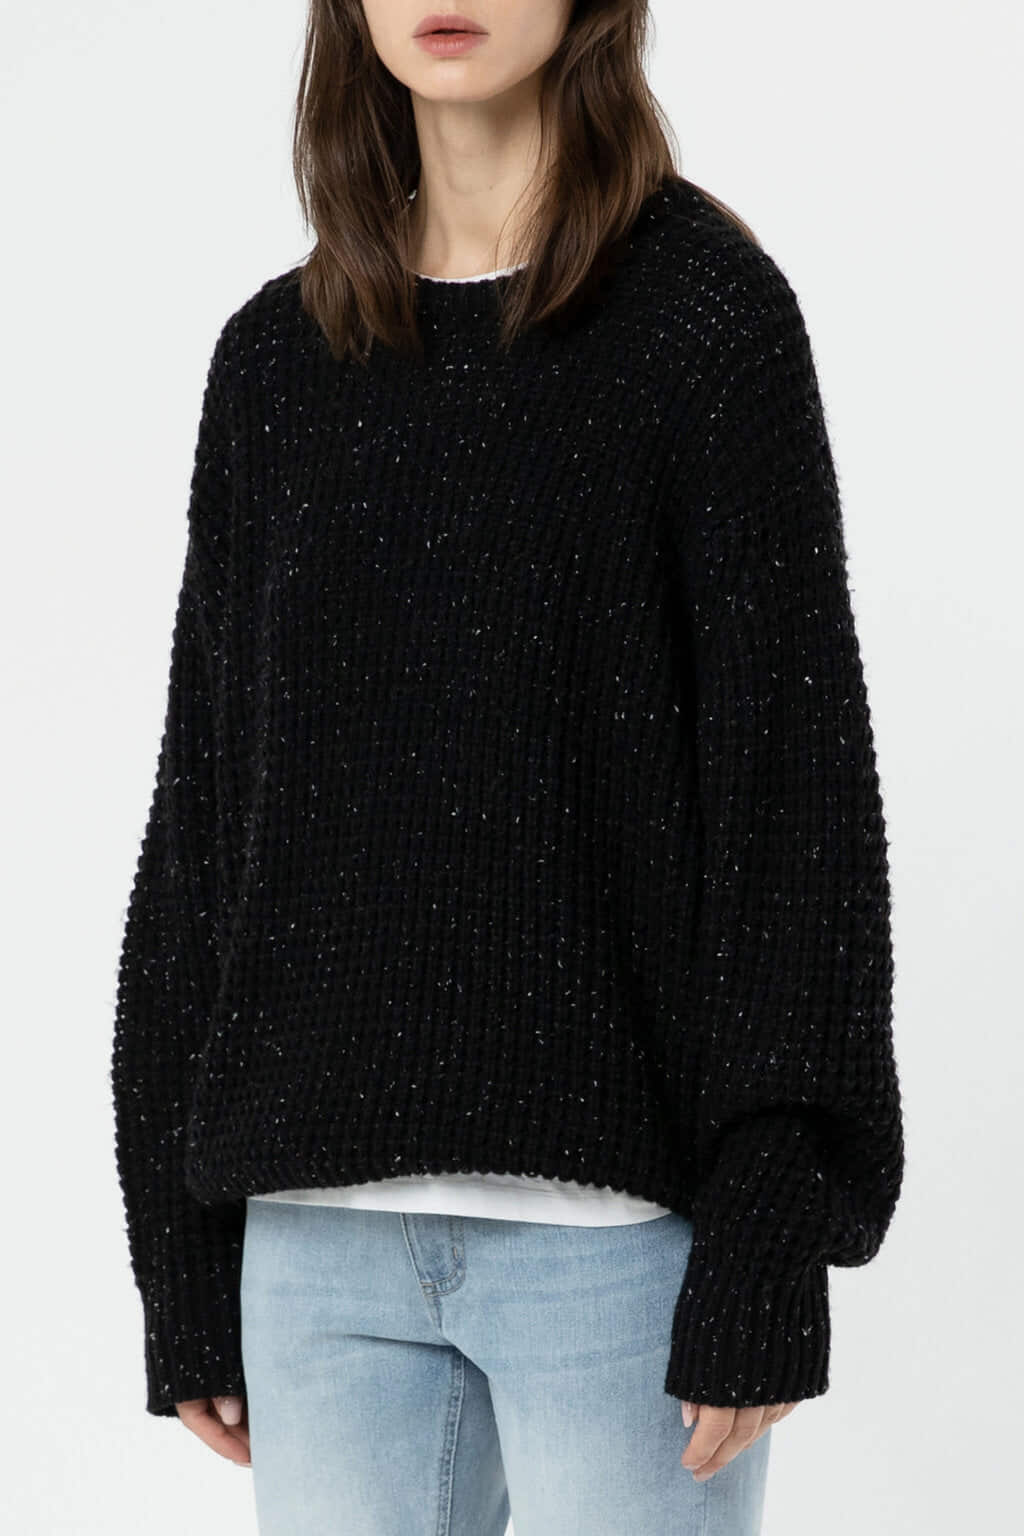 Sweater 2971 Black 4